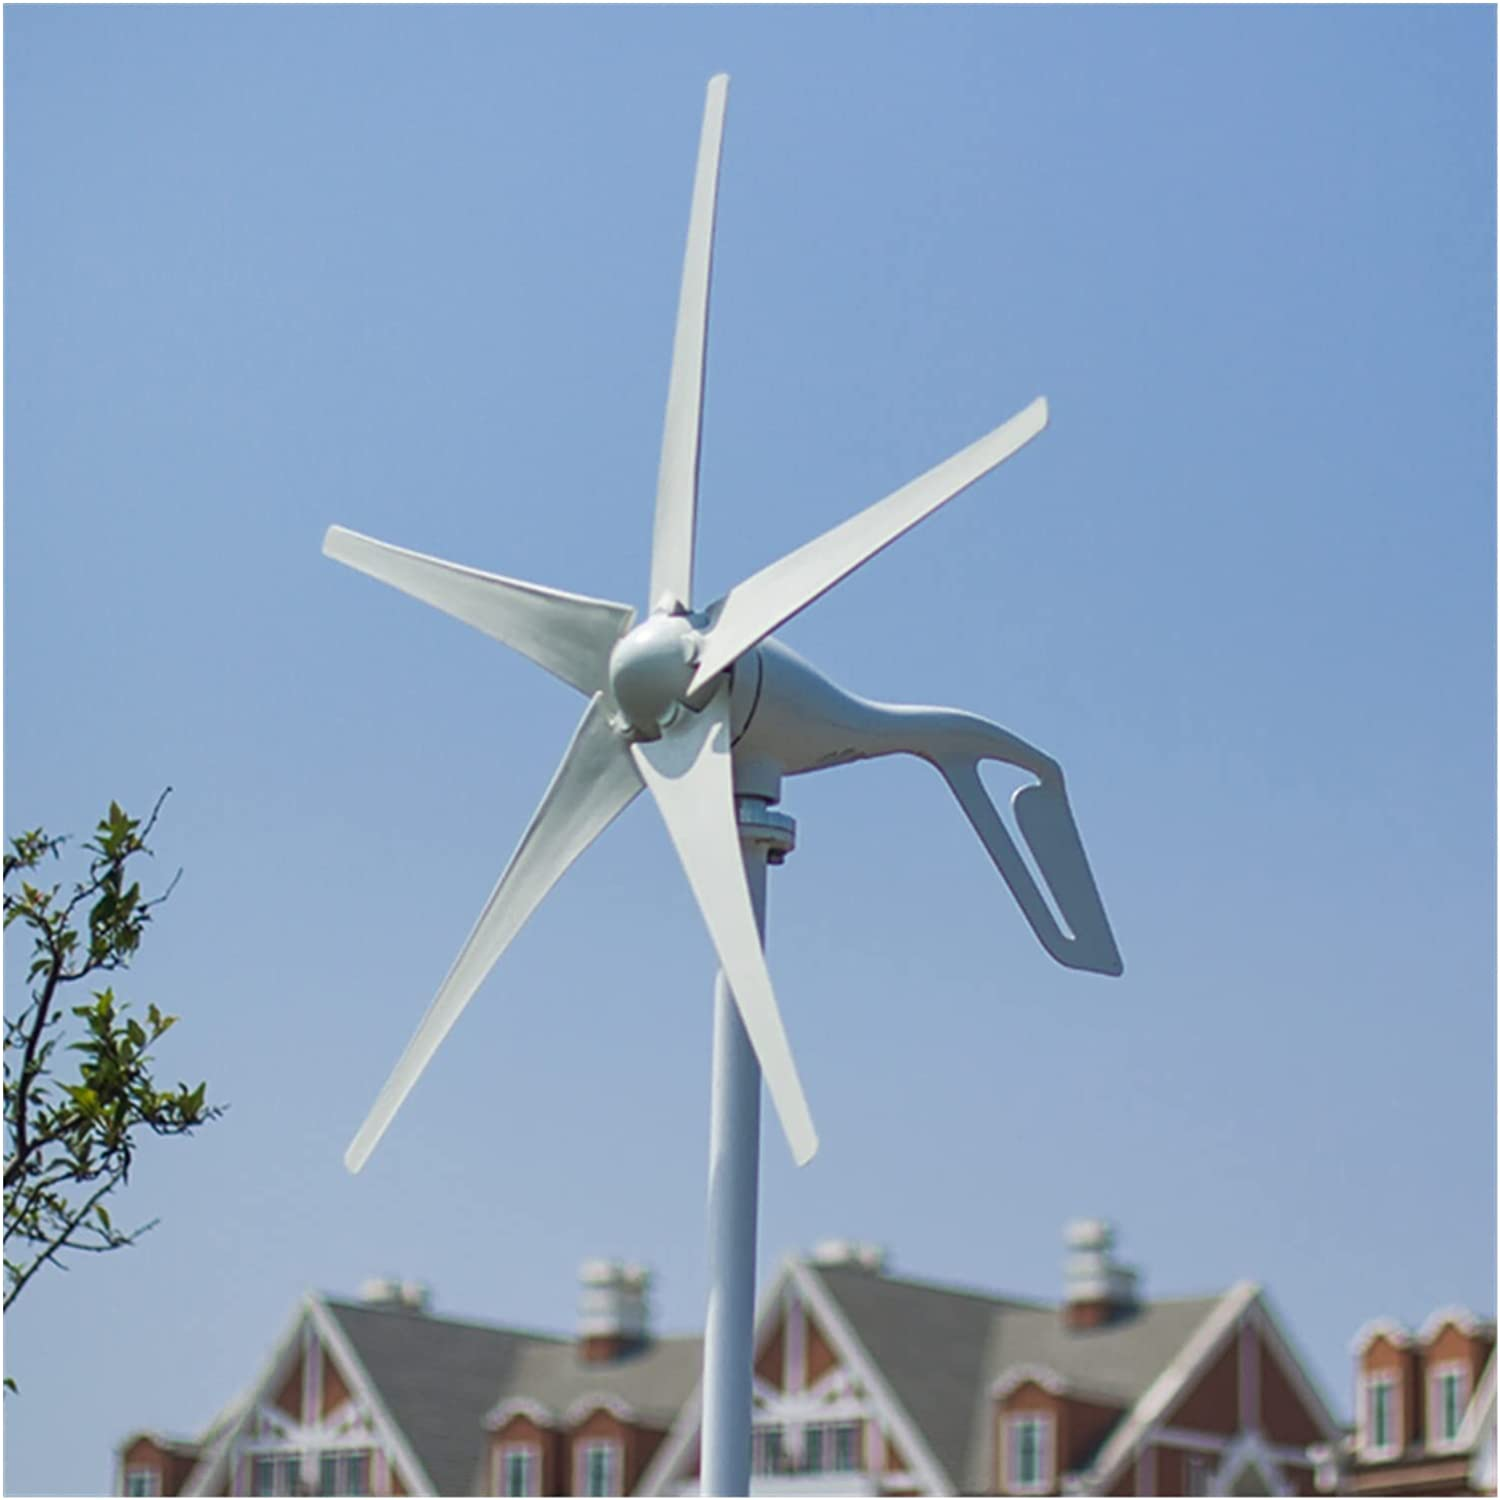 Lifyn2 Wind Turbine Generator excellence 24V Selling and selling kit 12V